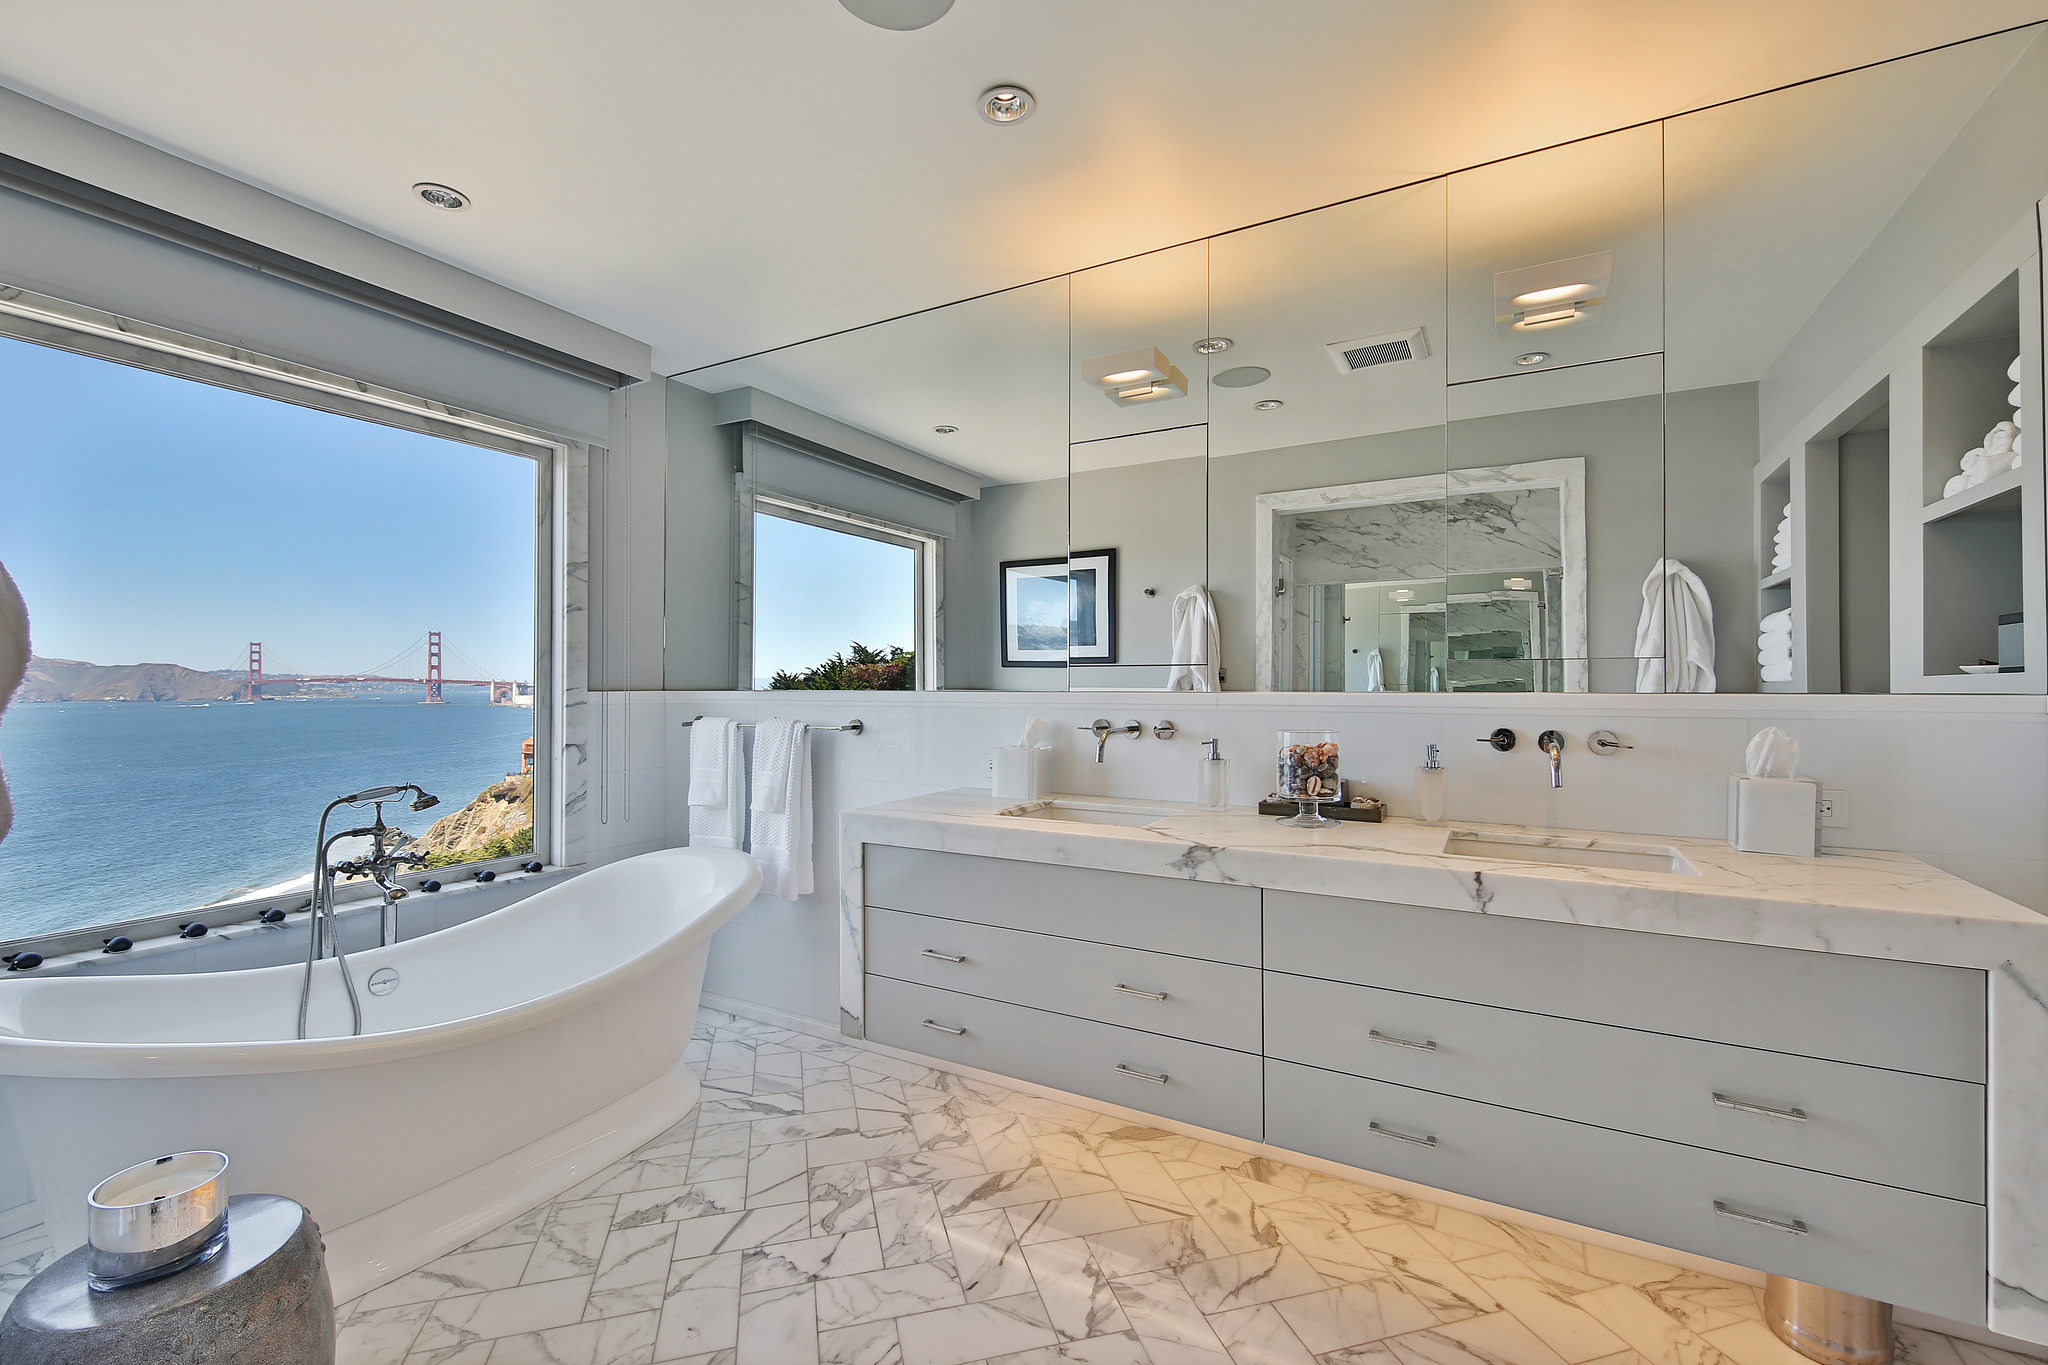 Bathing with a view of the Golden Gate Bridge.